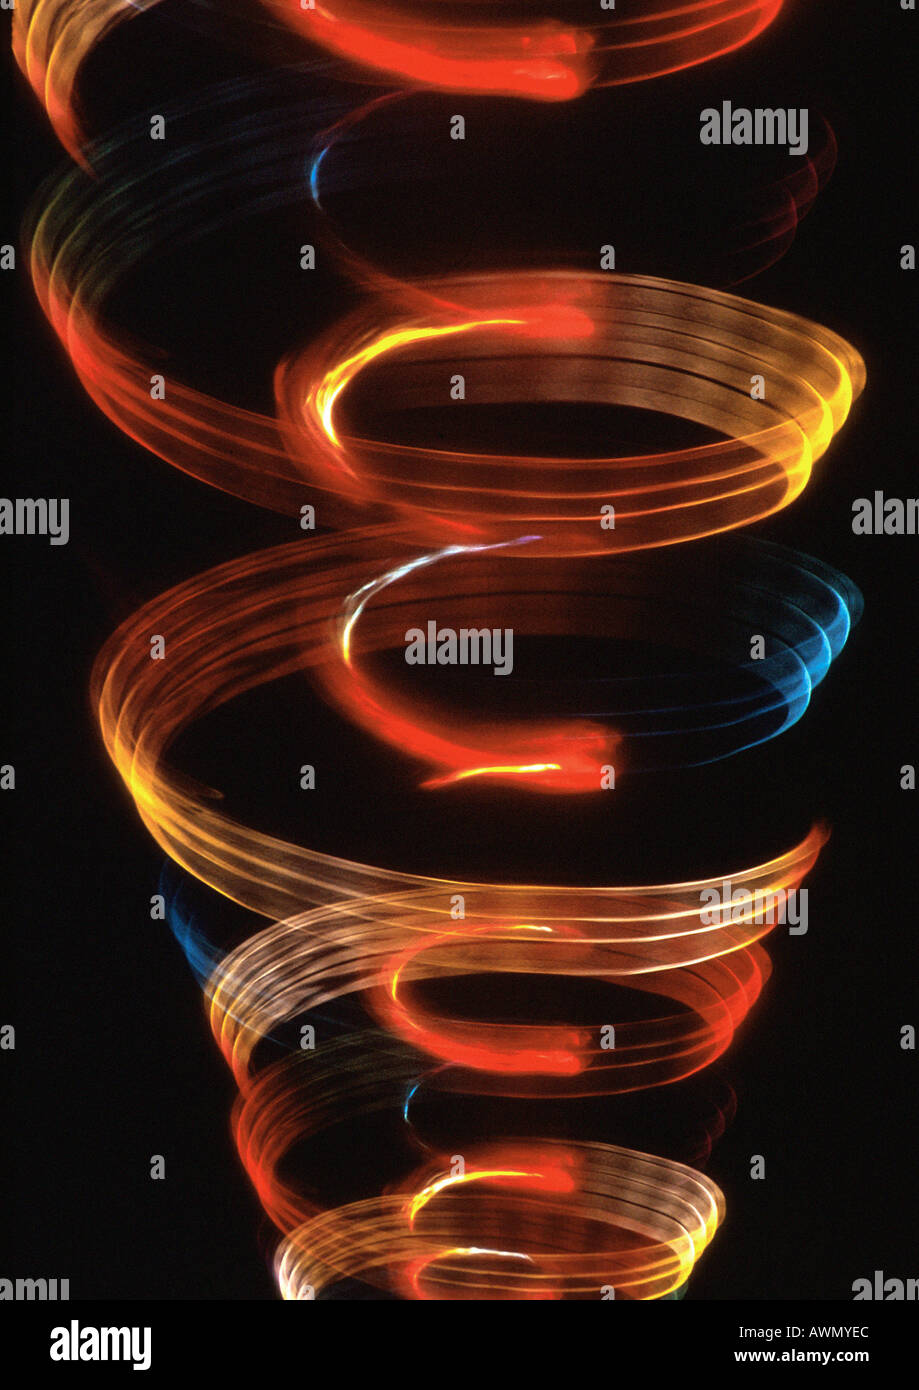 Spiraling light effect, one within the other, oranges, reds and blues. - Stock Image